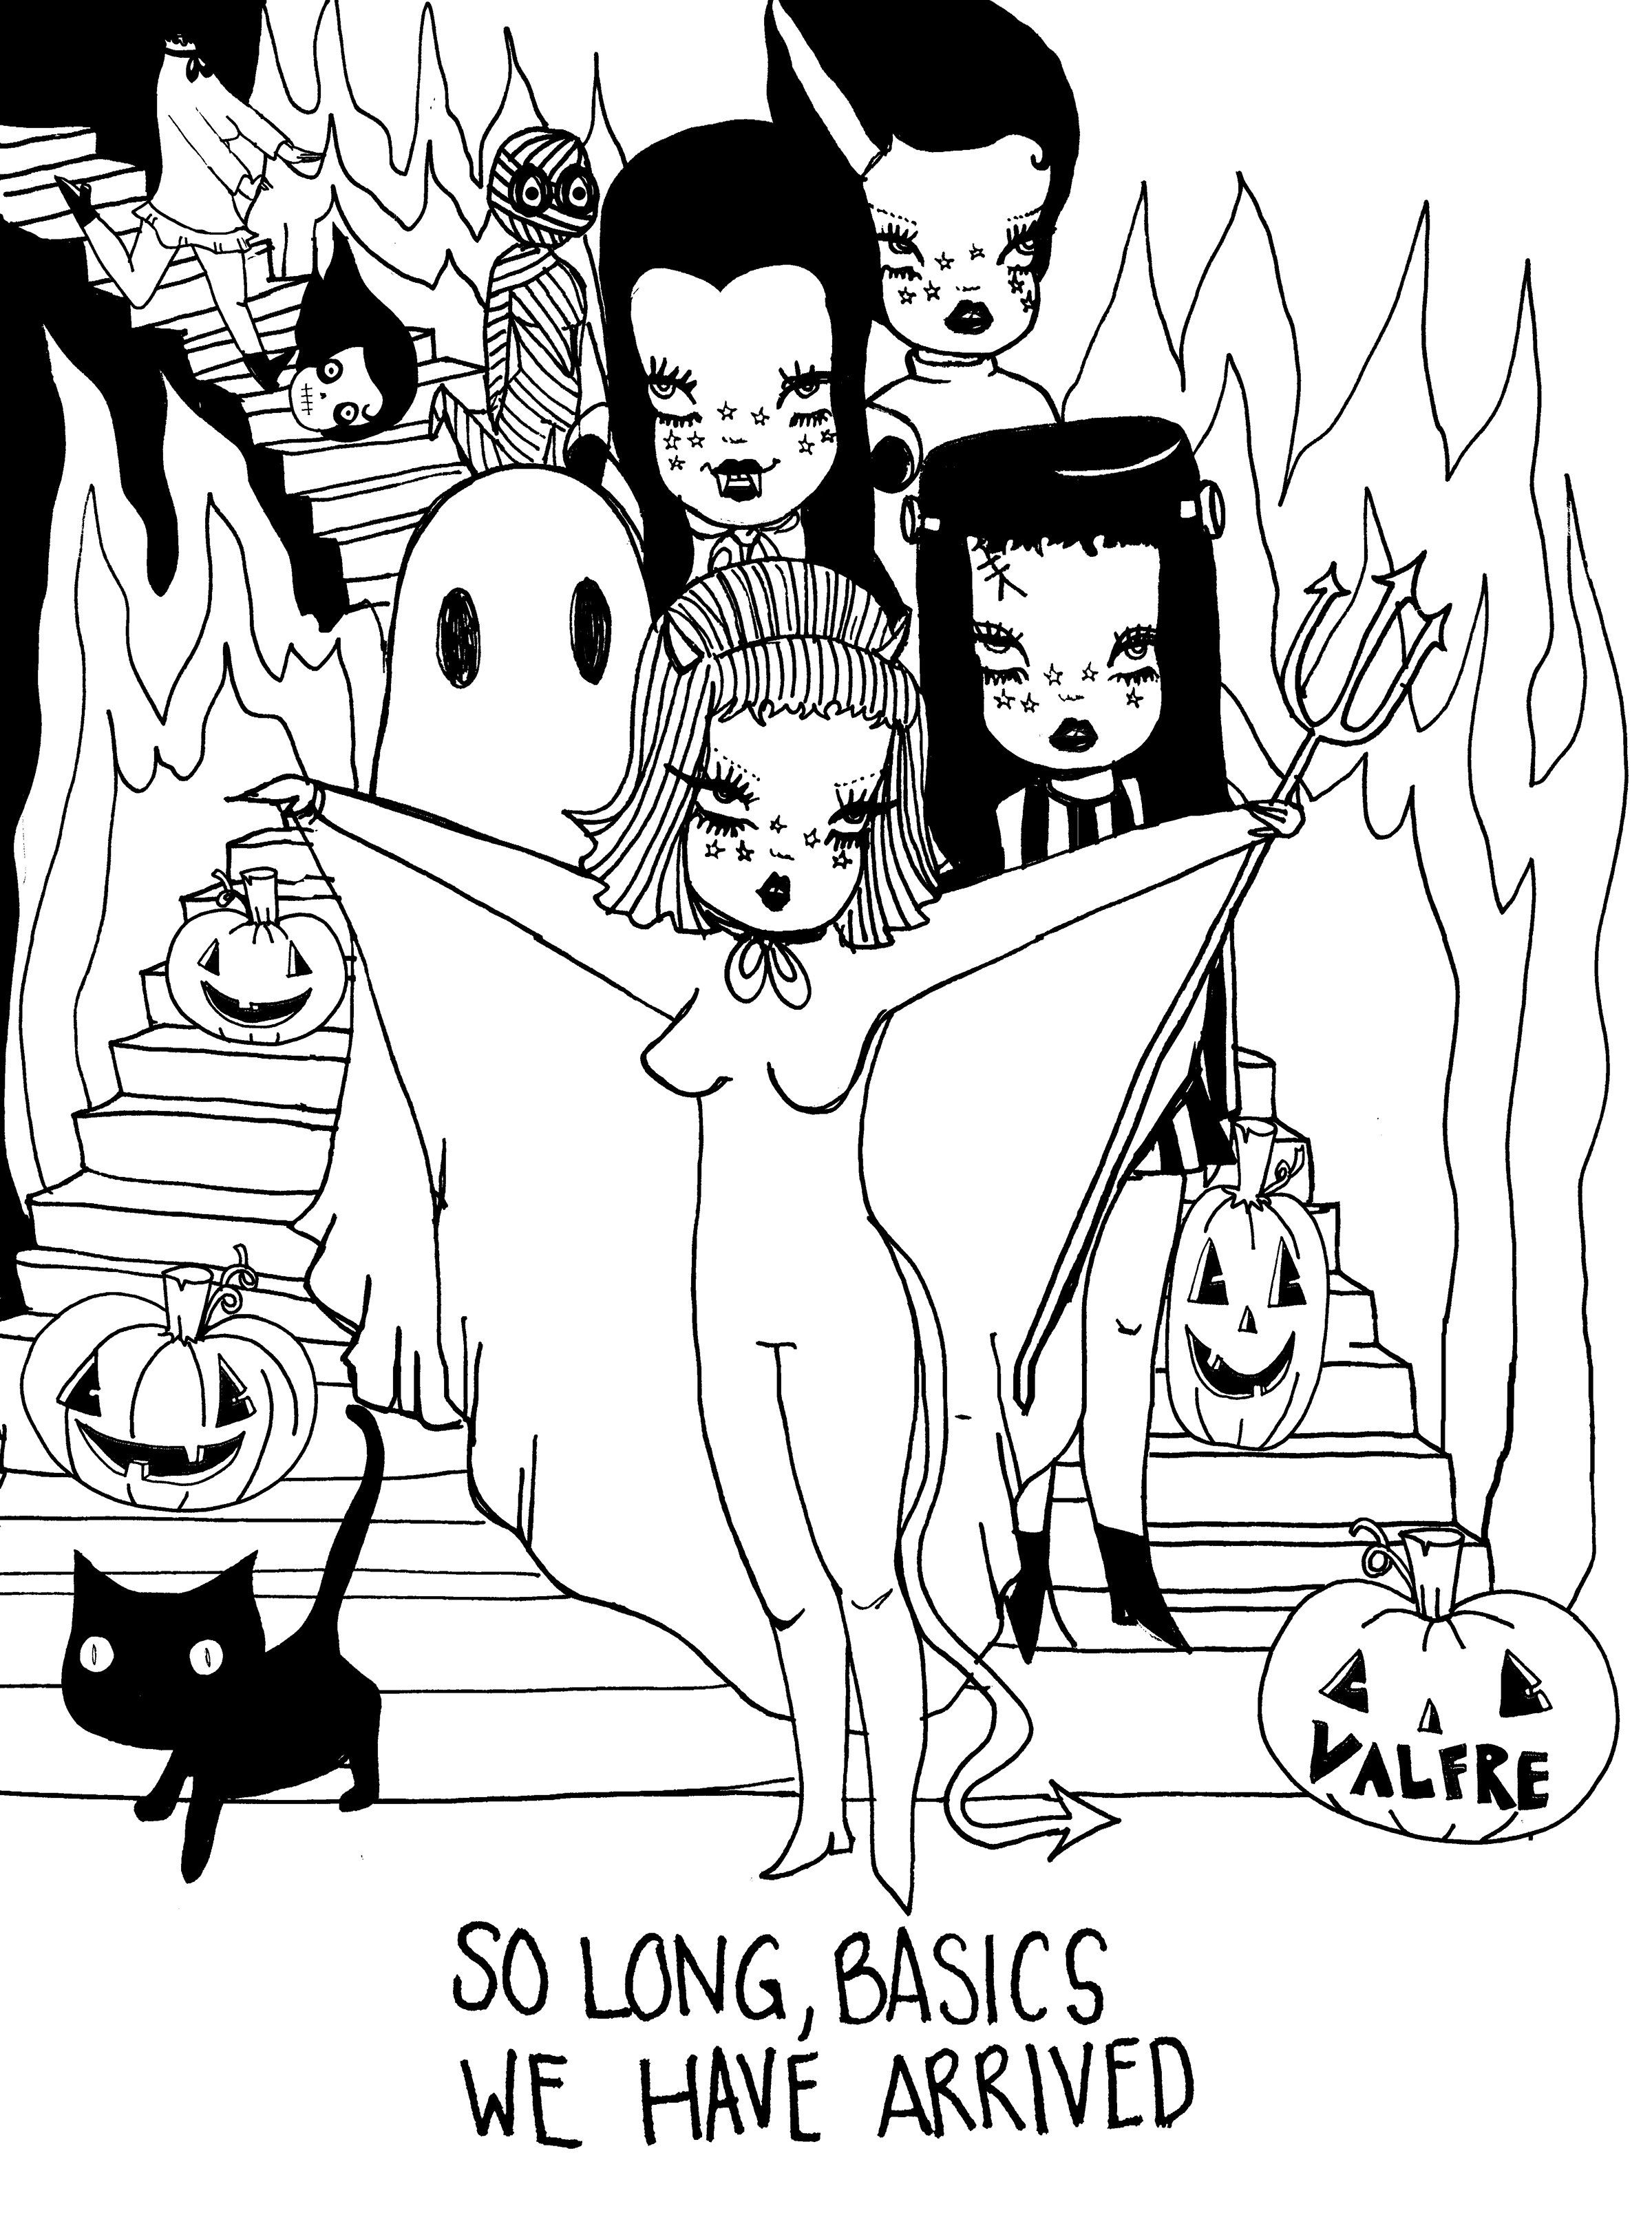 Valfrecolorme Coloring Pages Coloring Pages Halloween Coloring Pages Halloween Coloring